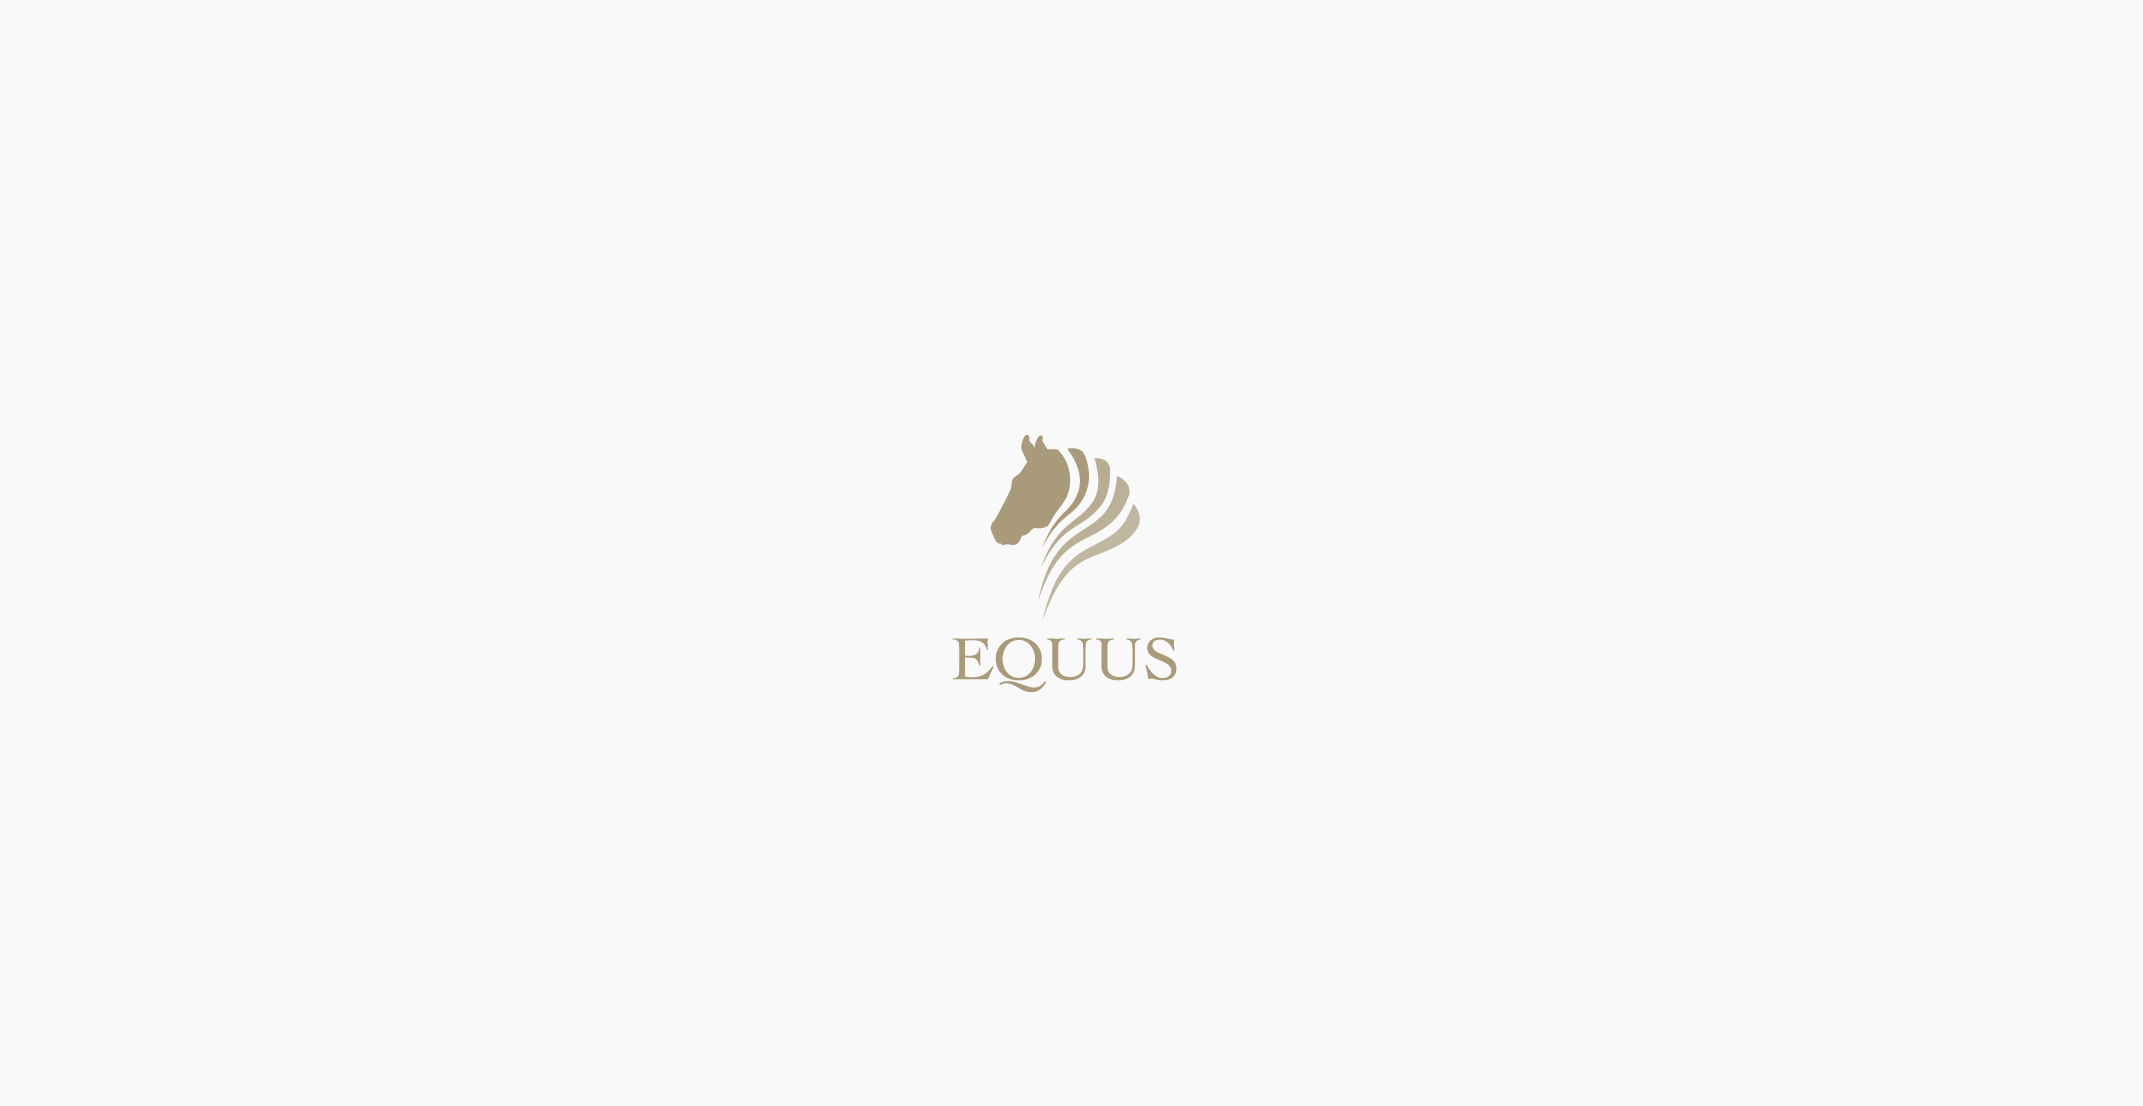 Logo designe for Equus